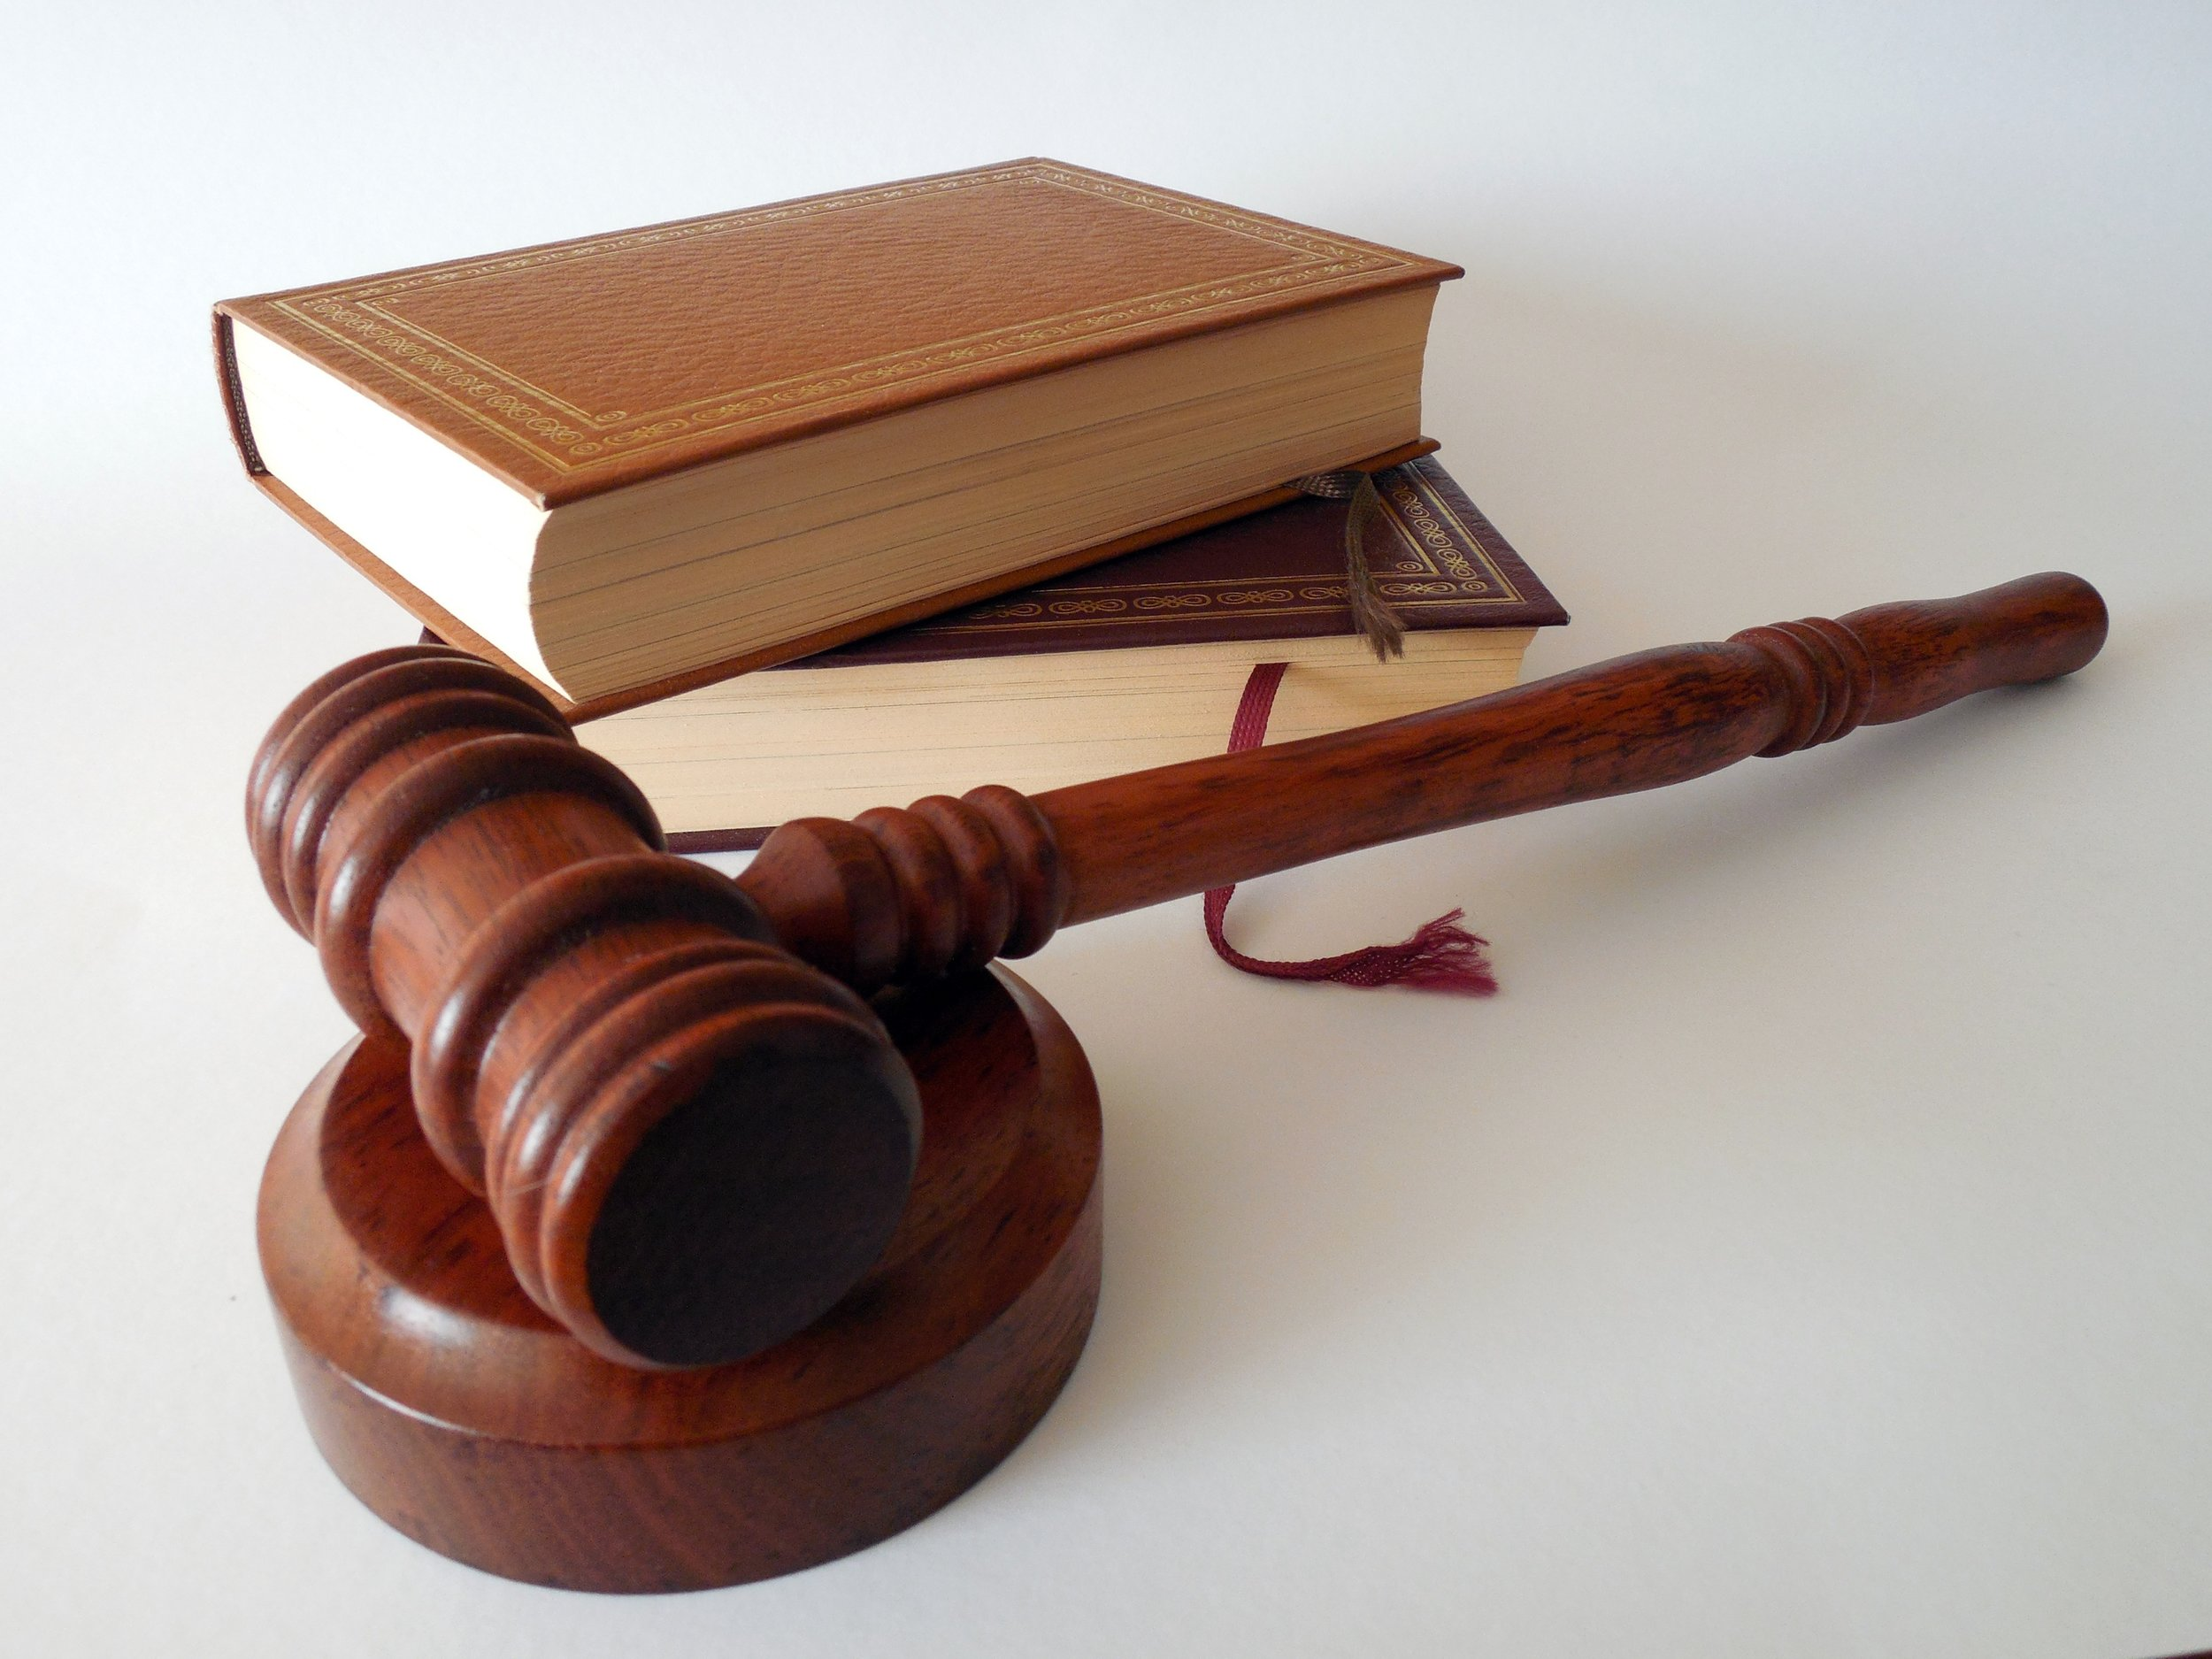 What expenses are tax deductible as a barrister?